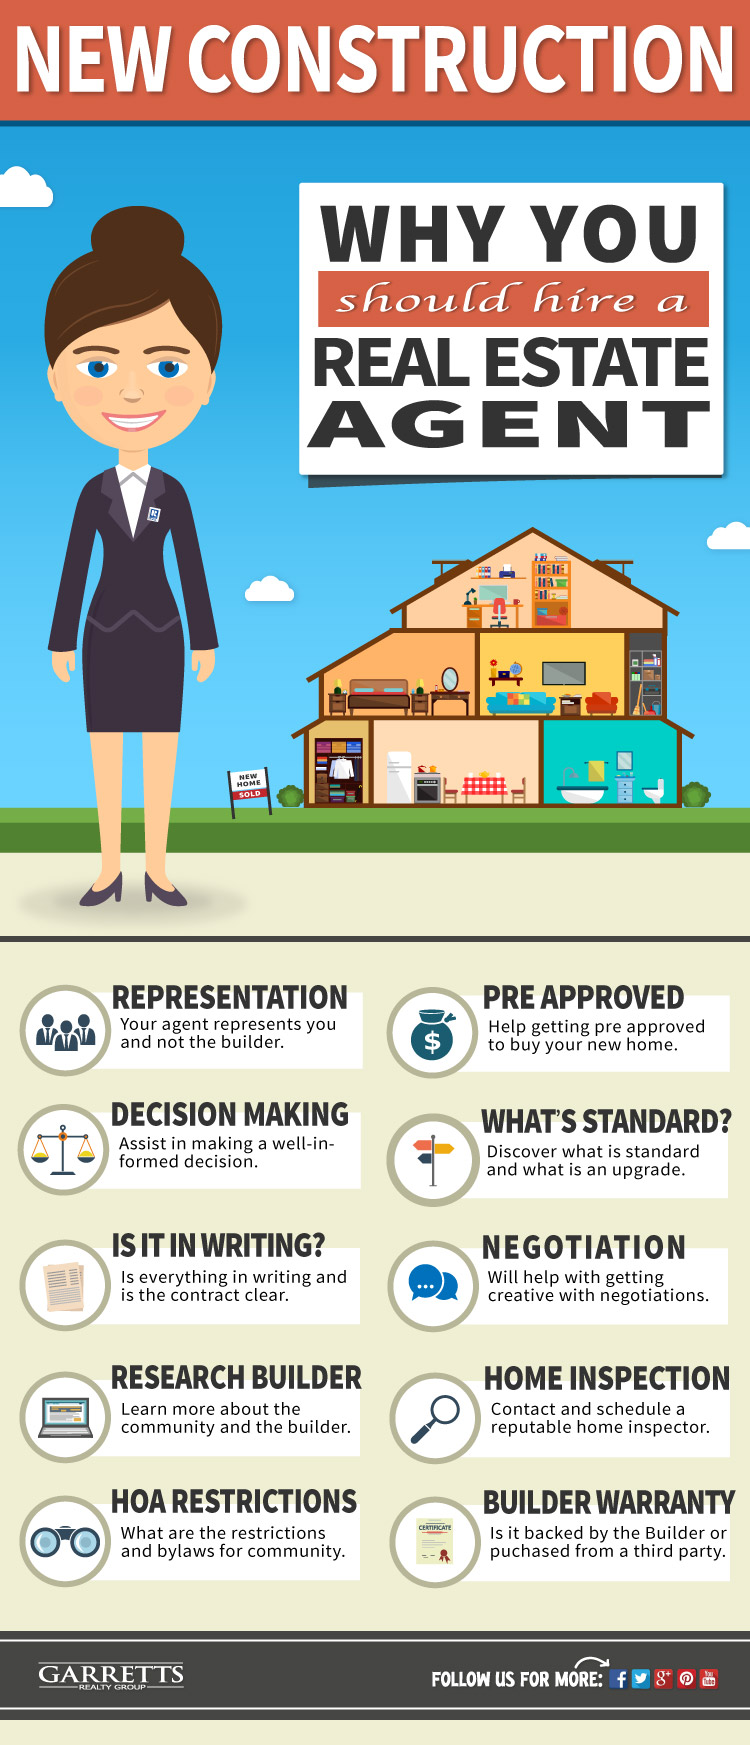 Learn why you should hire a REALTOR when buying a new construction home - Infographic.